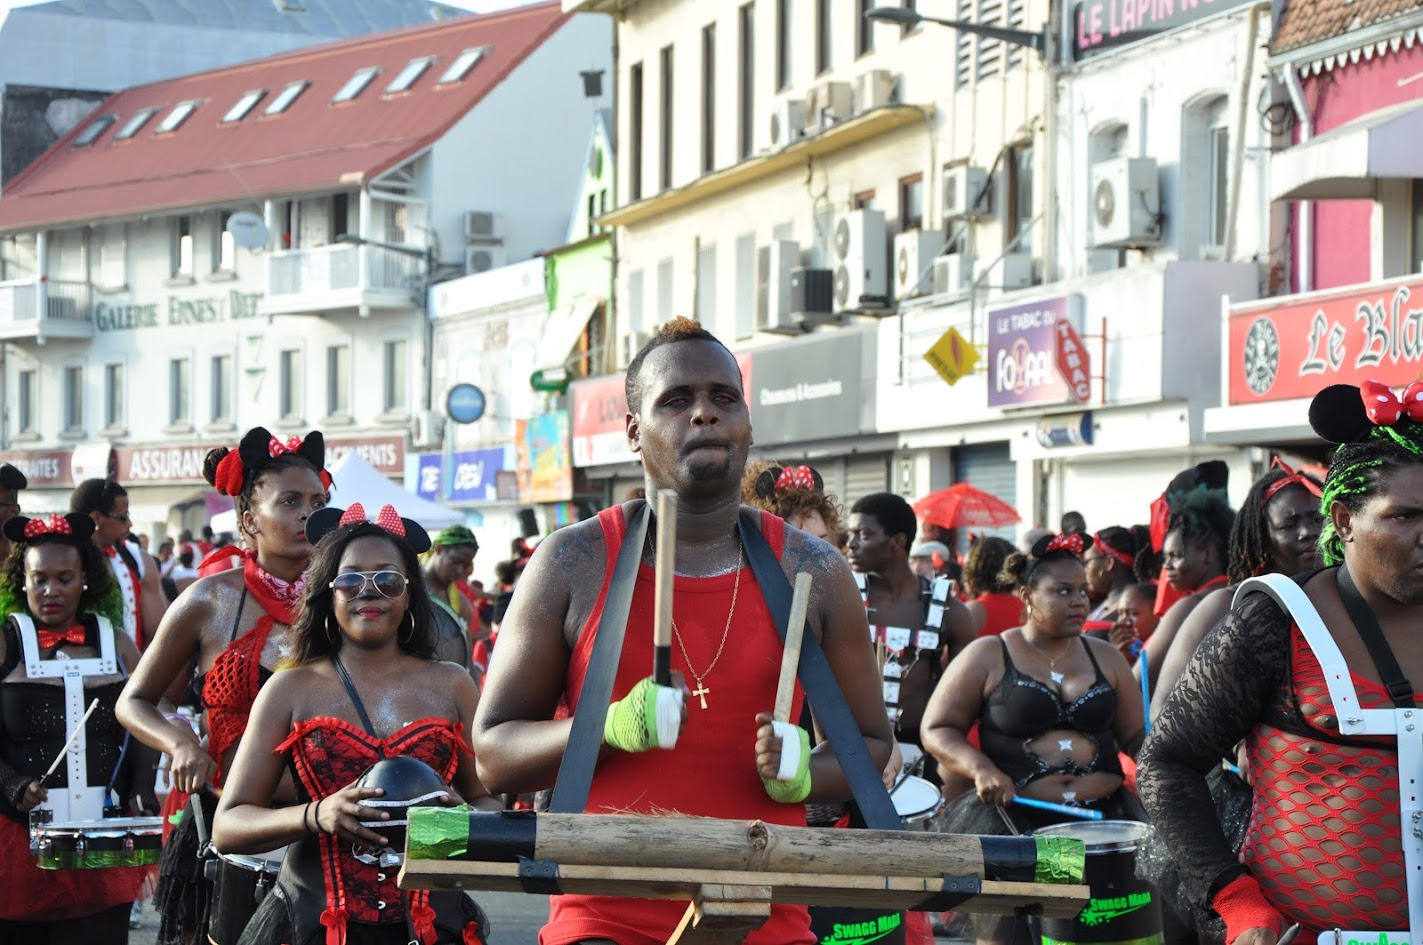 People wearing black and red according to the carnivals theme of the day